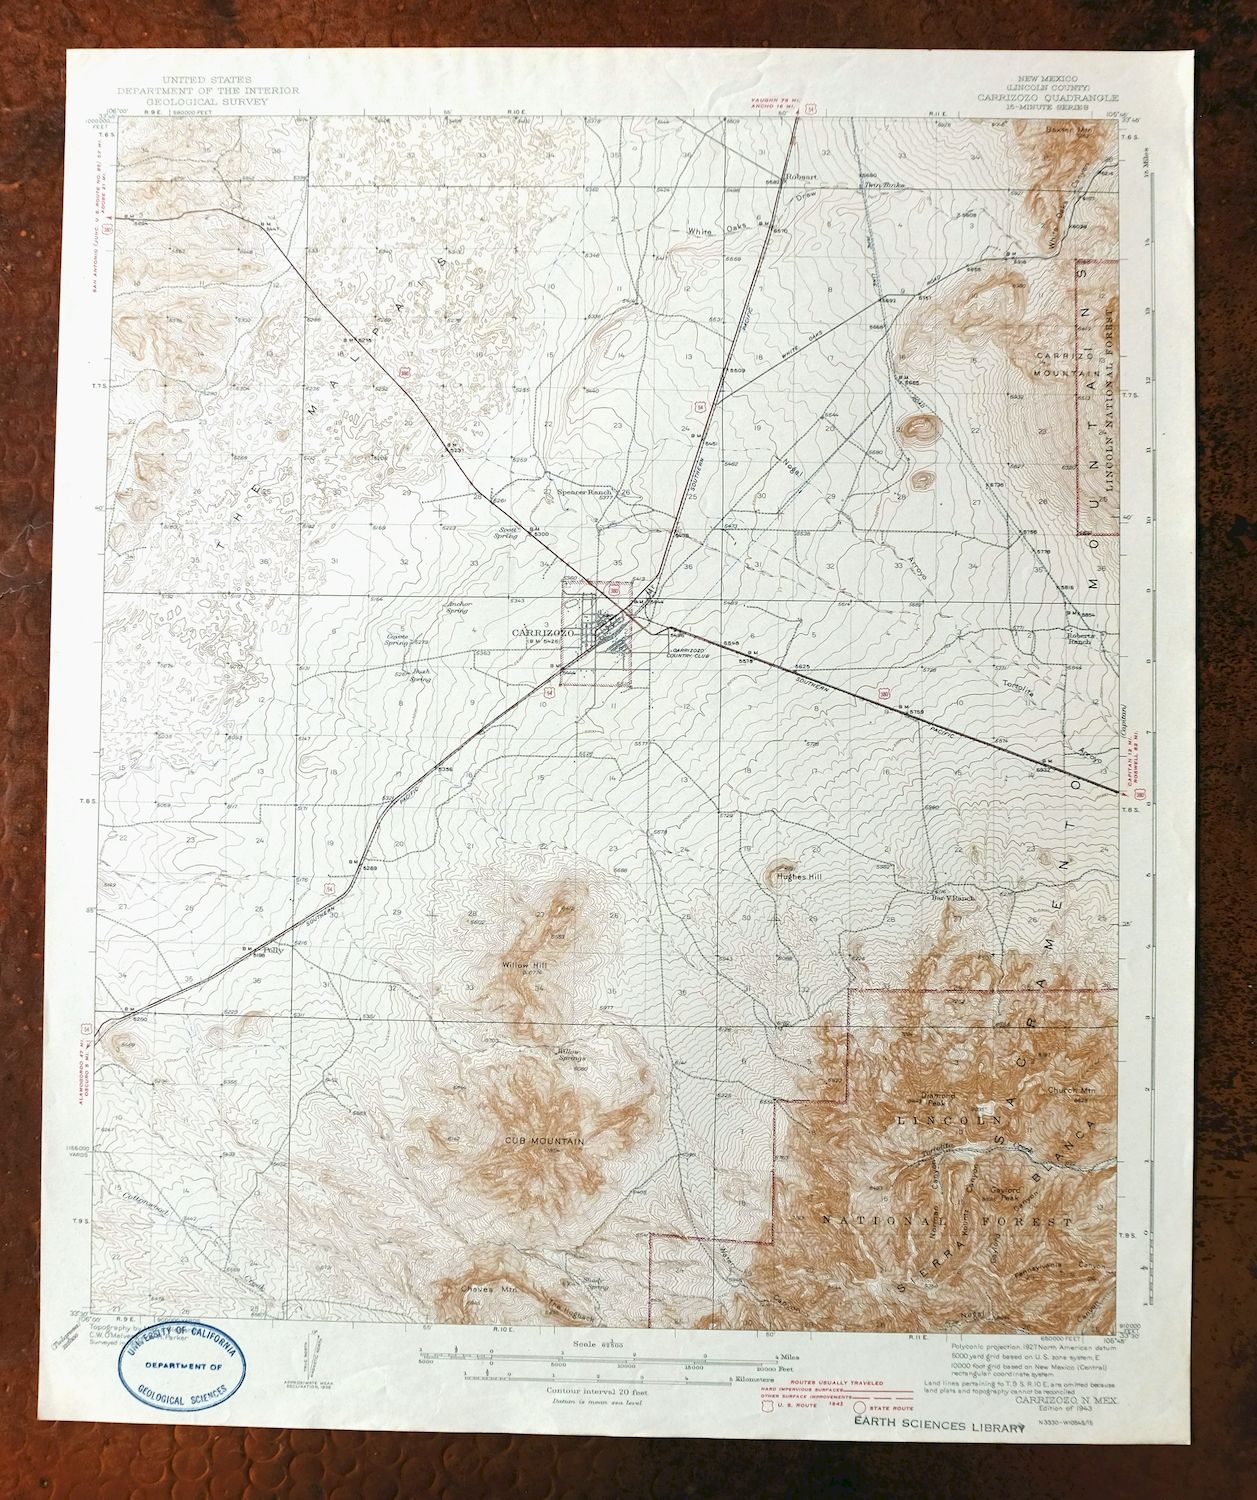 Details about 1943 Carrizozo New Mexico Vintage USGS Topographic Map  Sacramento Mountains